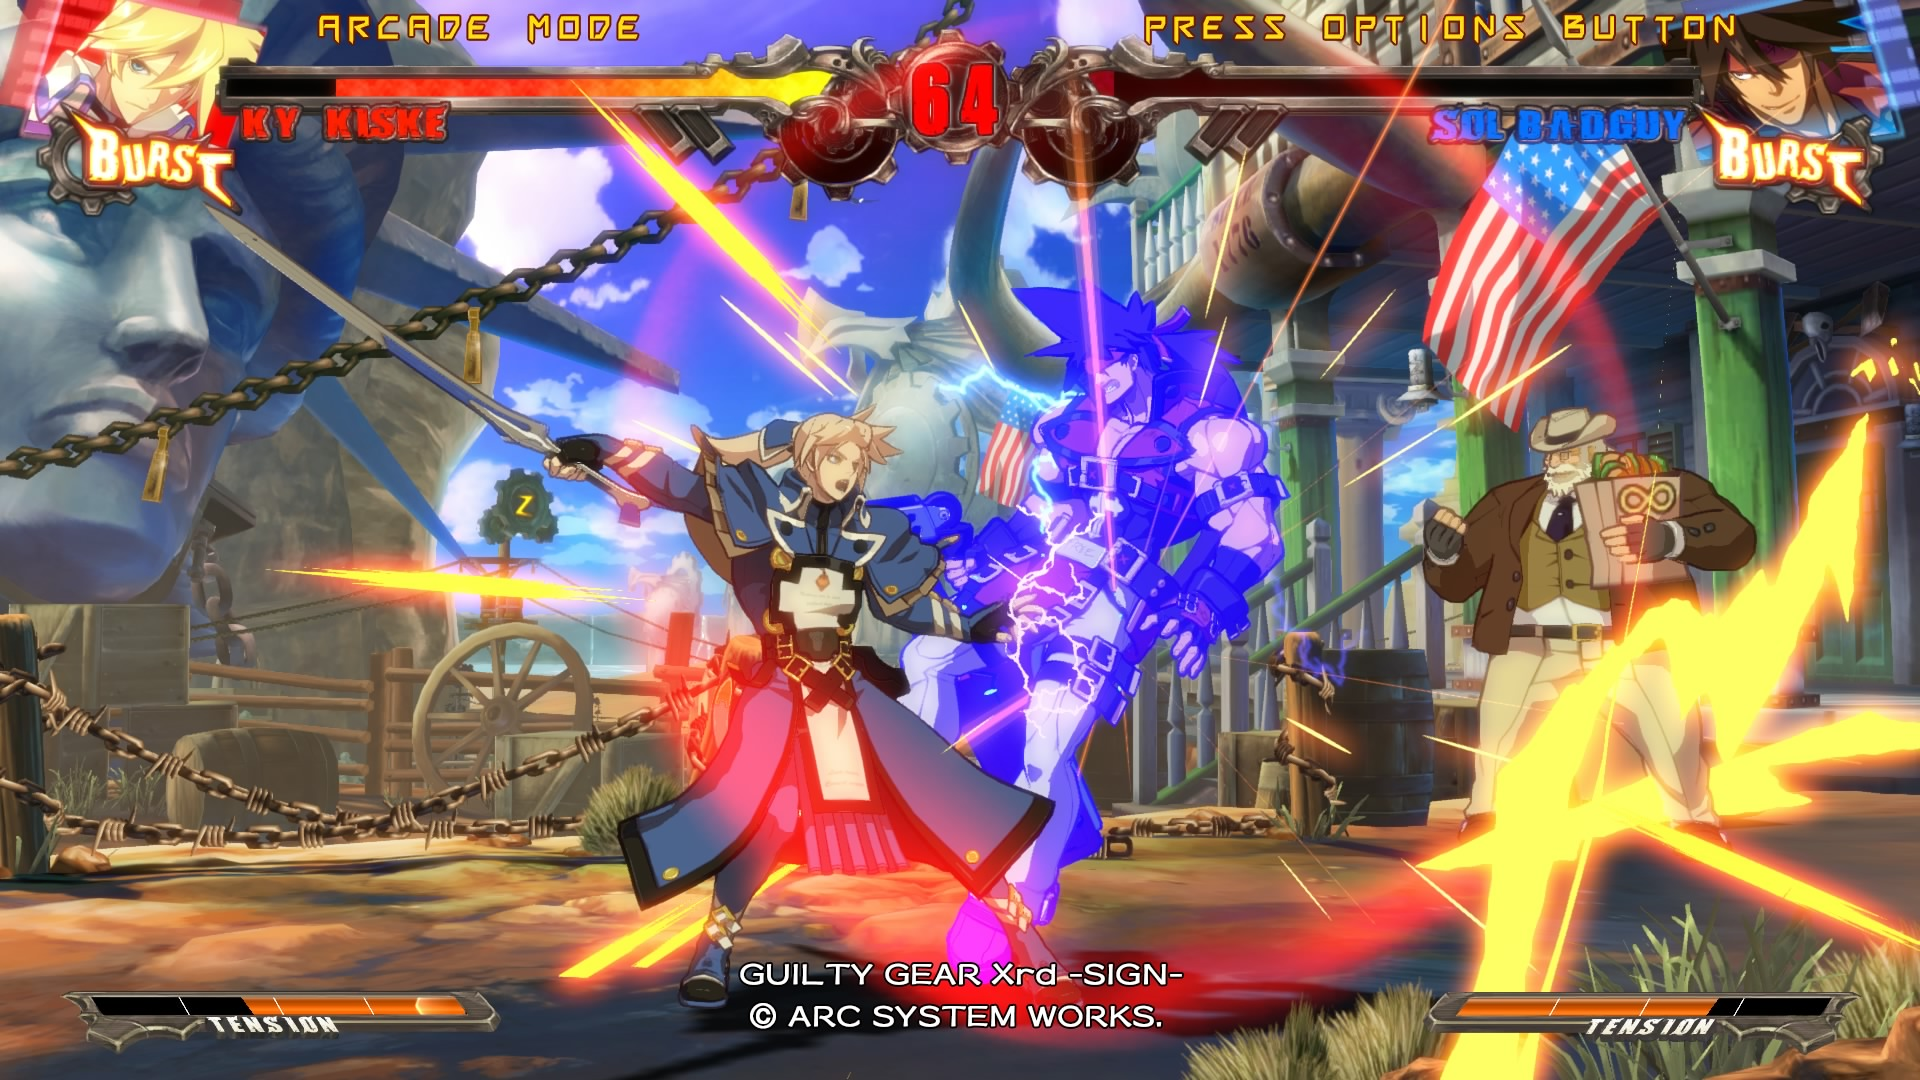 Guilty Gear Xrd -SIGN- PS4 Review: Let's Rock (Again) | USgamer